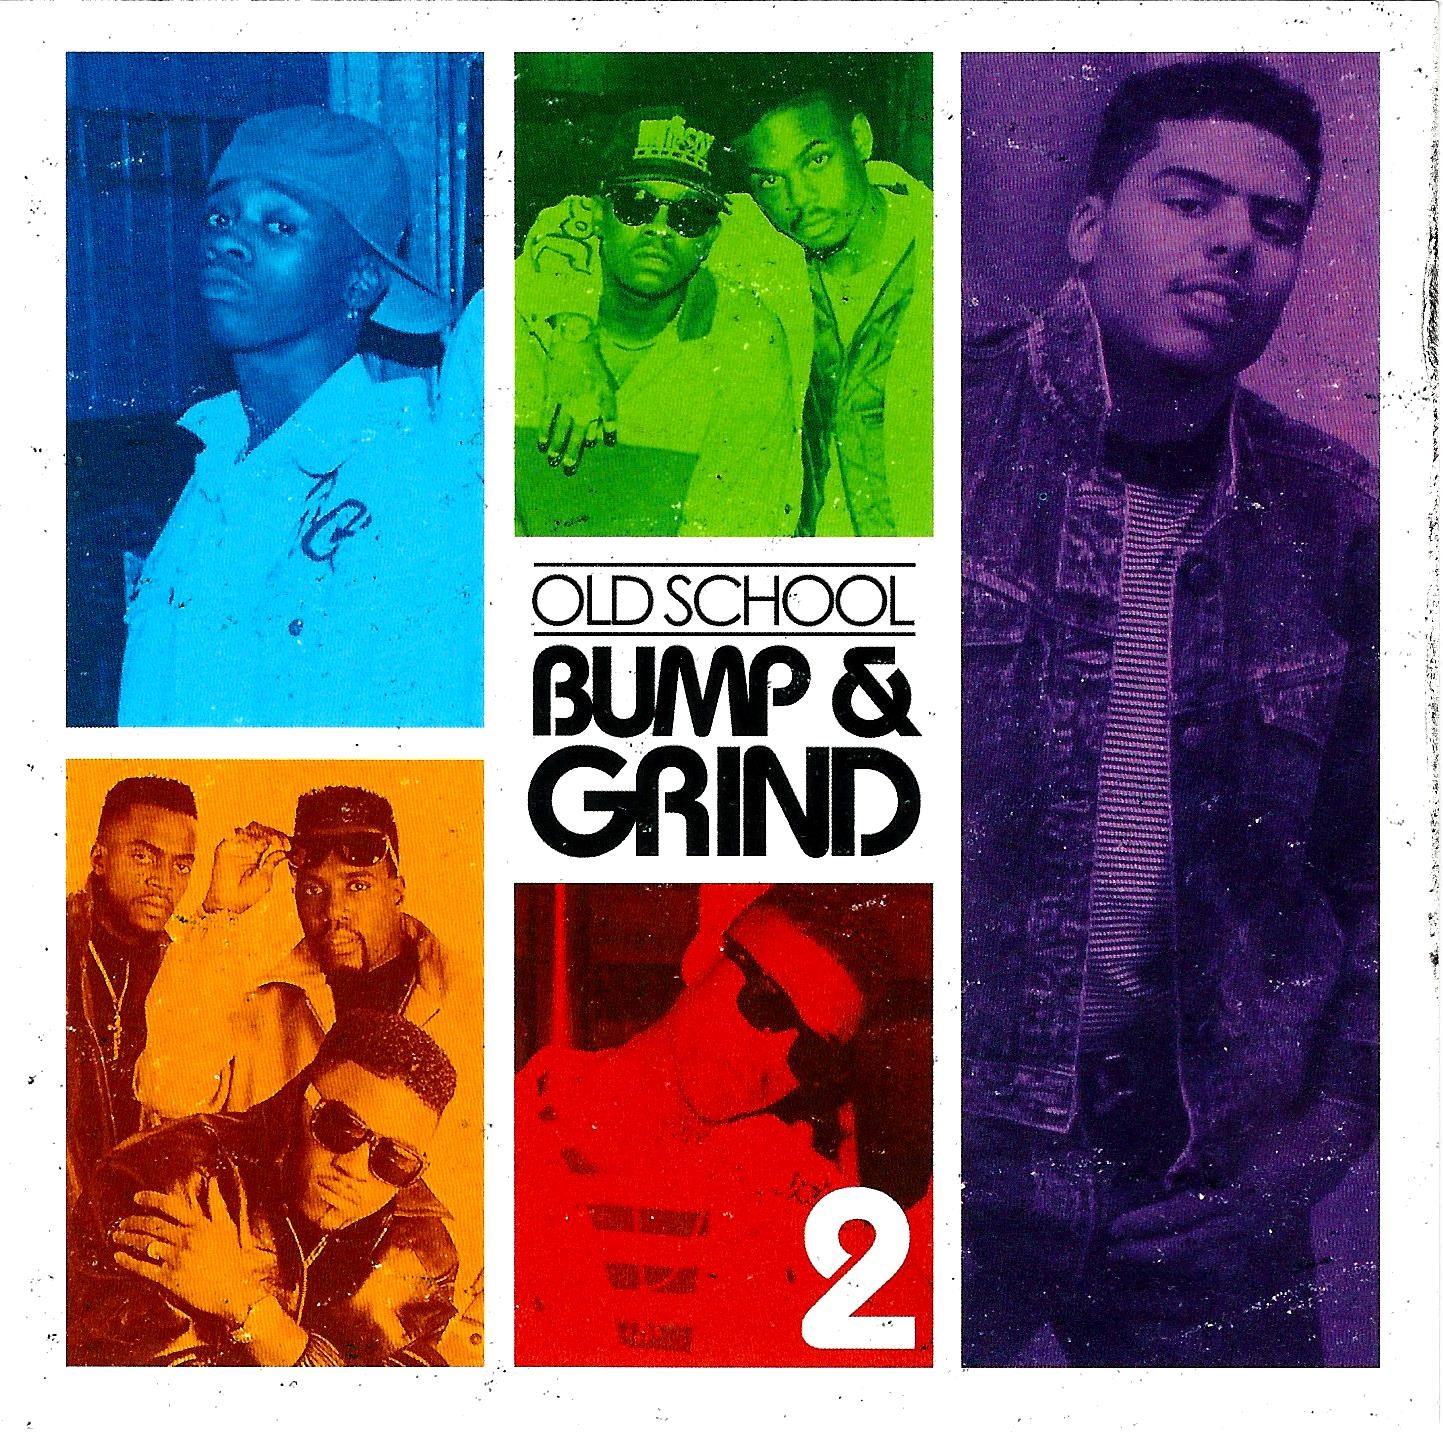 Old School Bump N Grind vol. 2